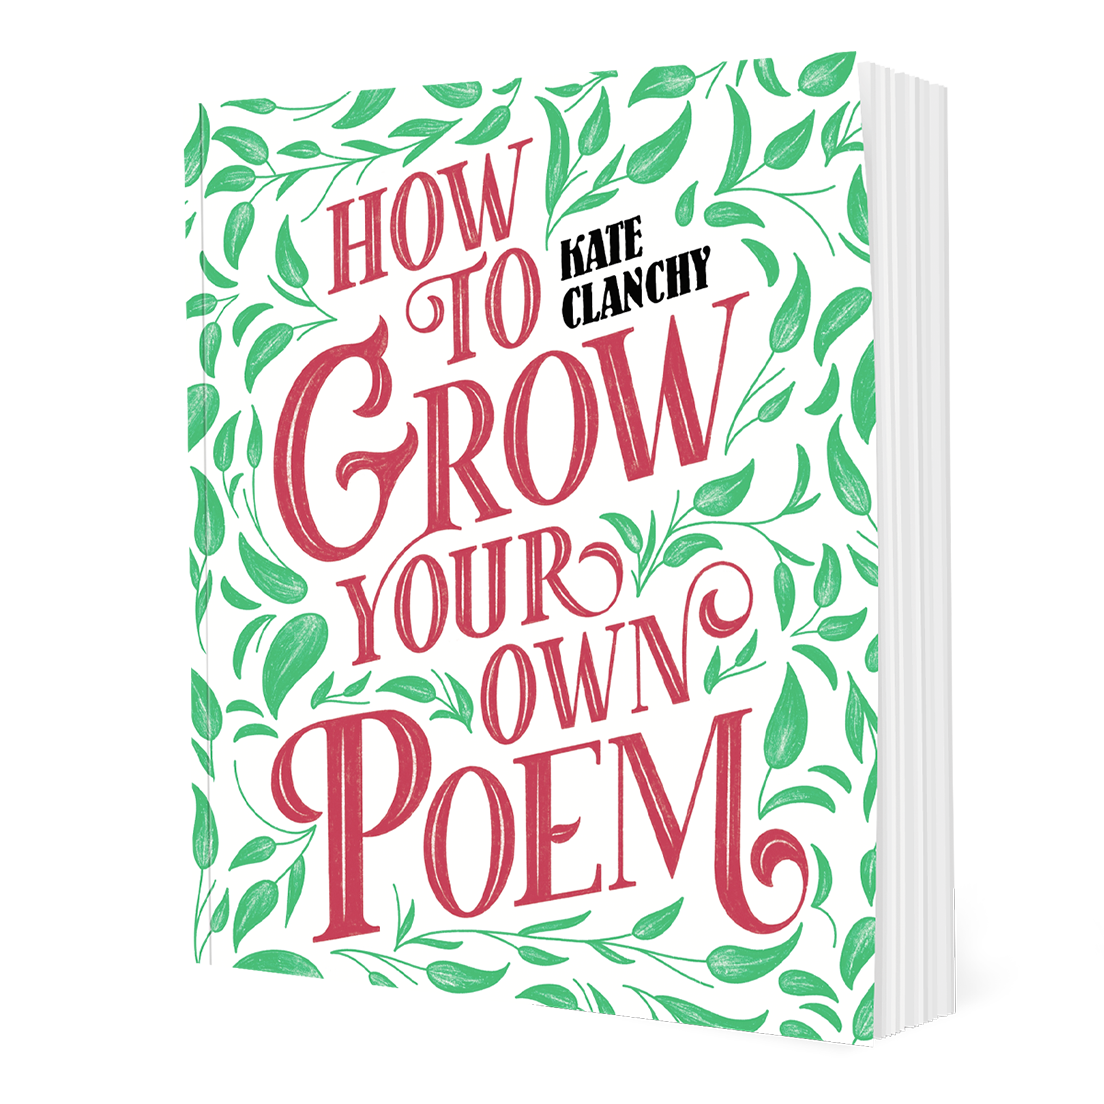 How to Grow Your Own Poem (Paperback)